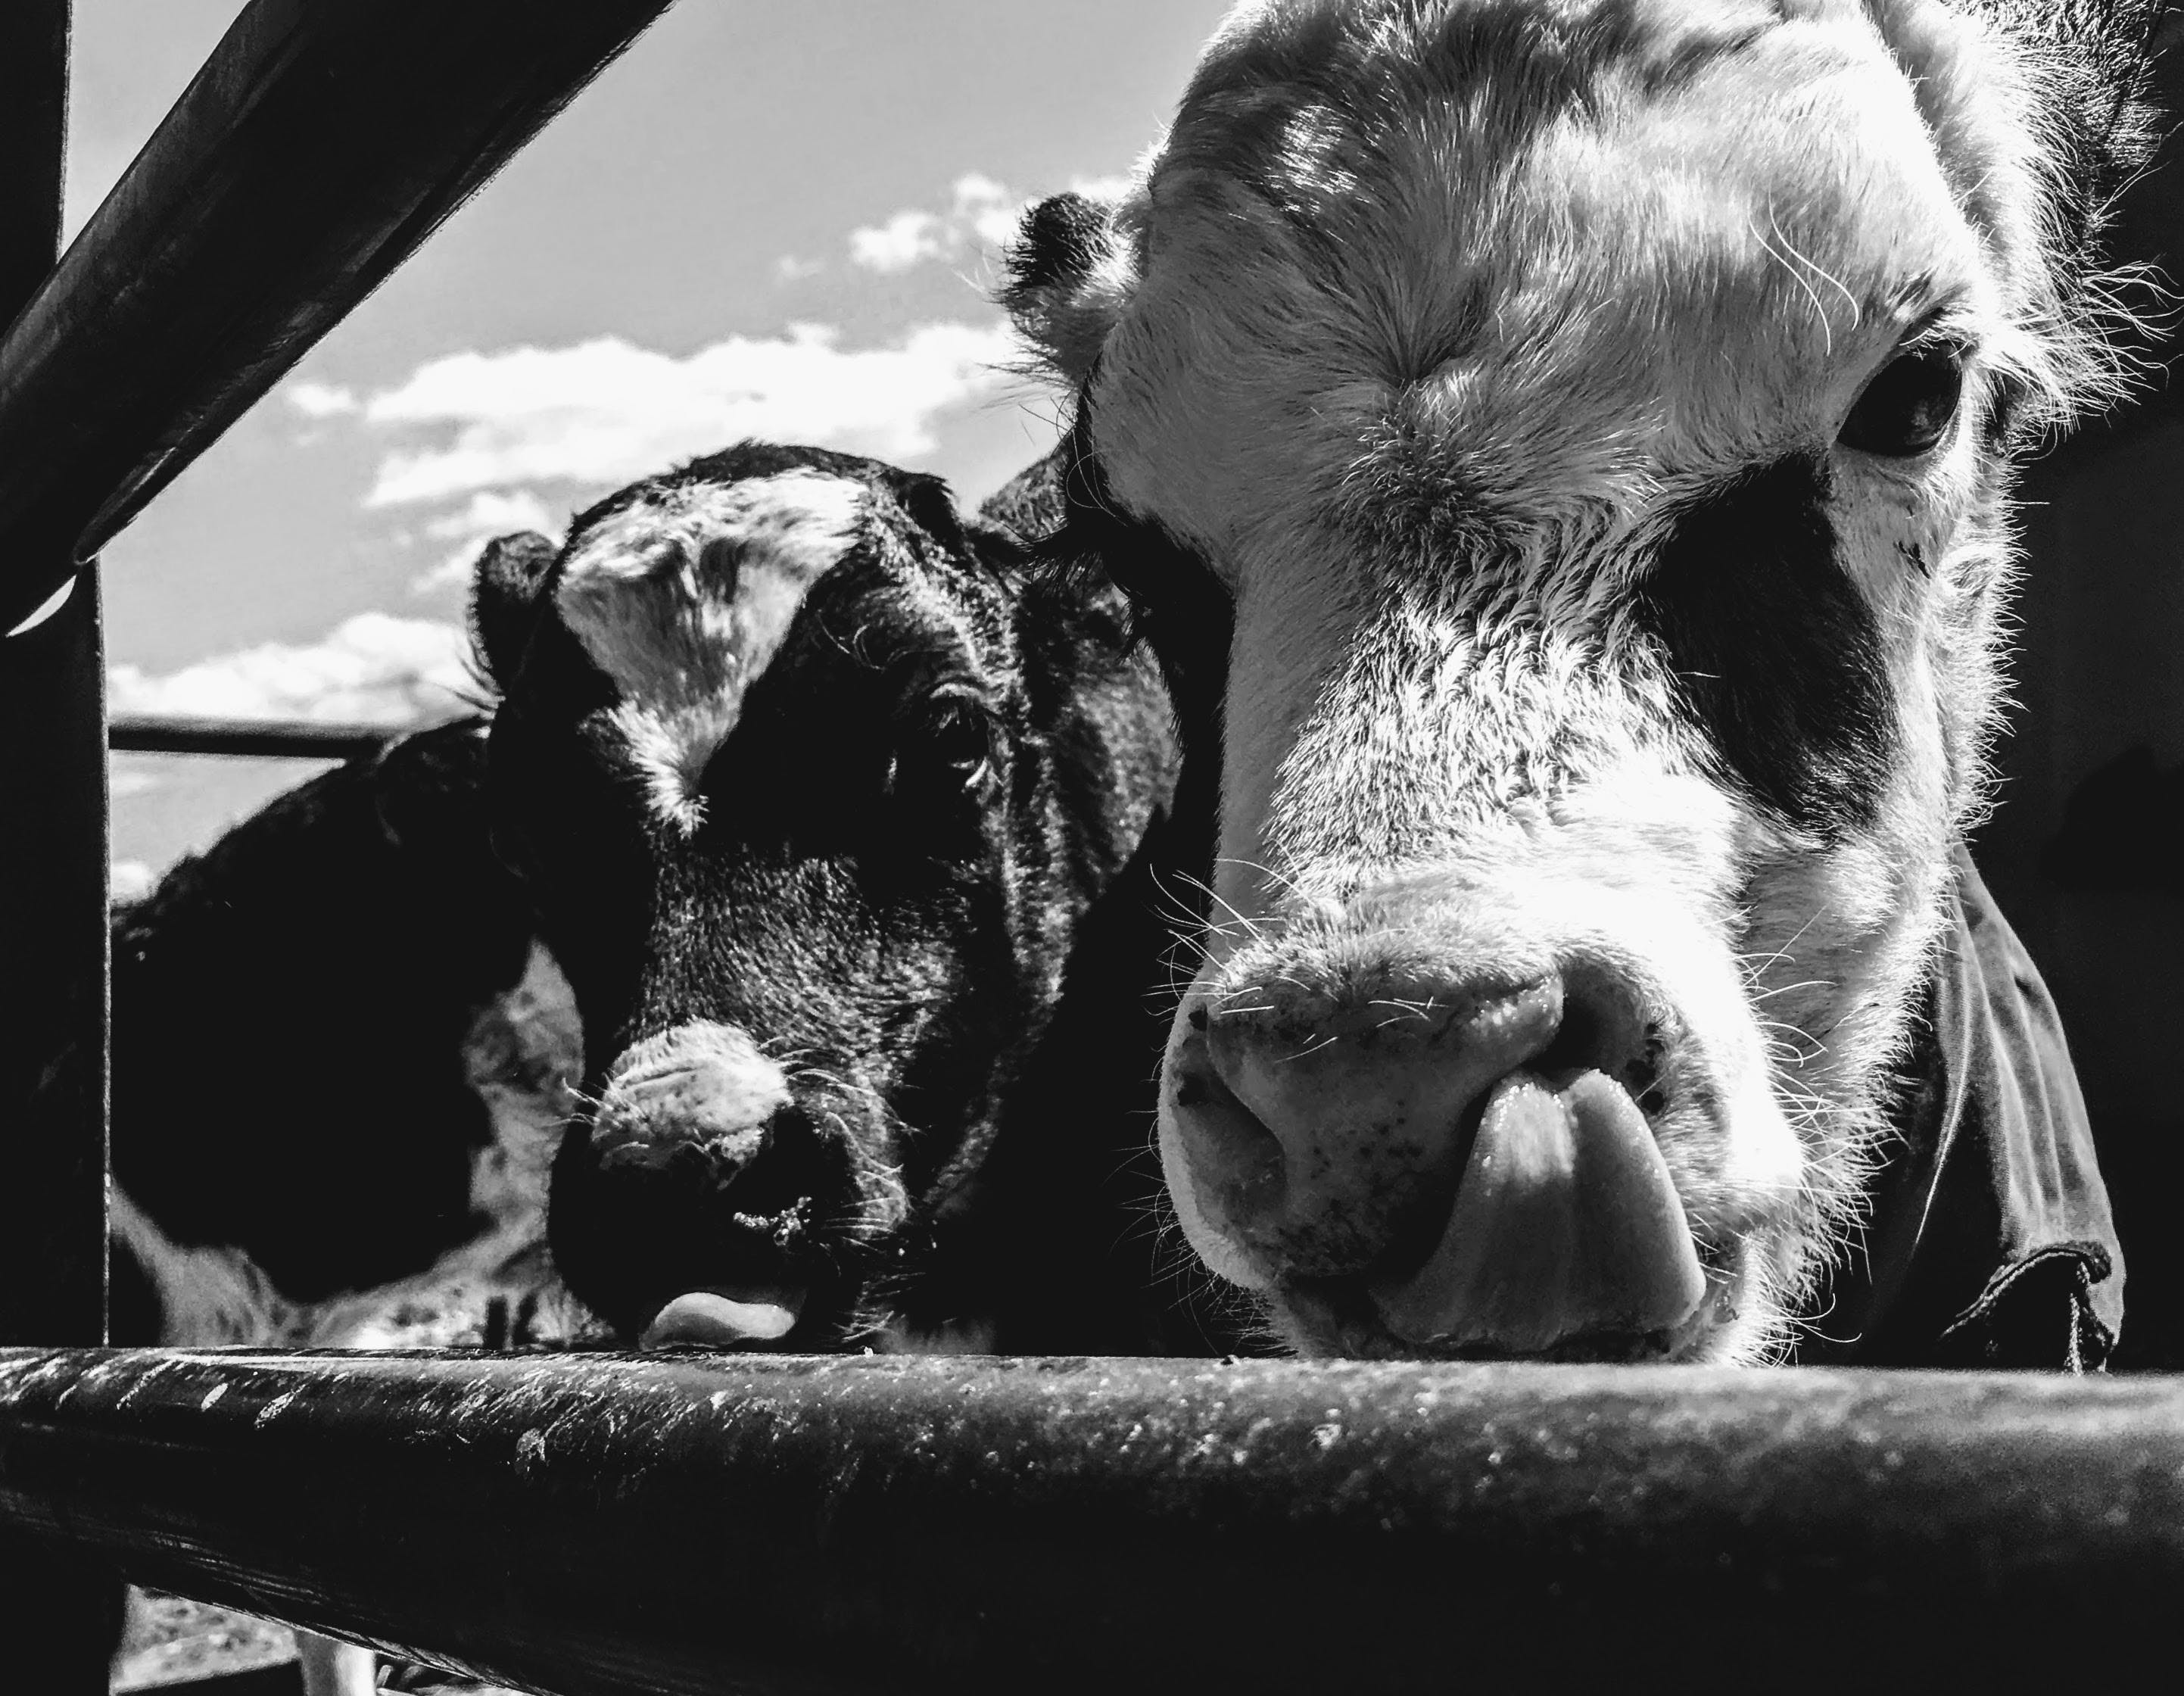 Grayscale Photo of Cows